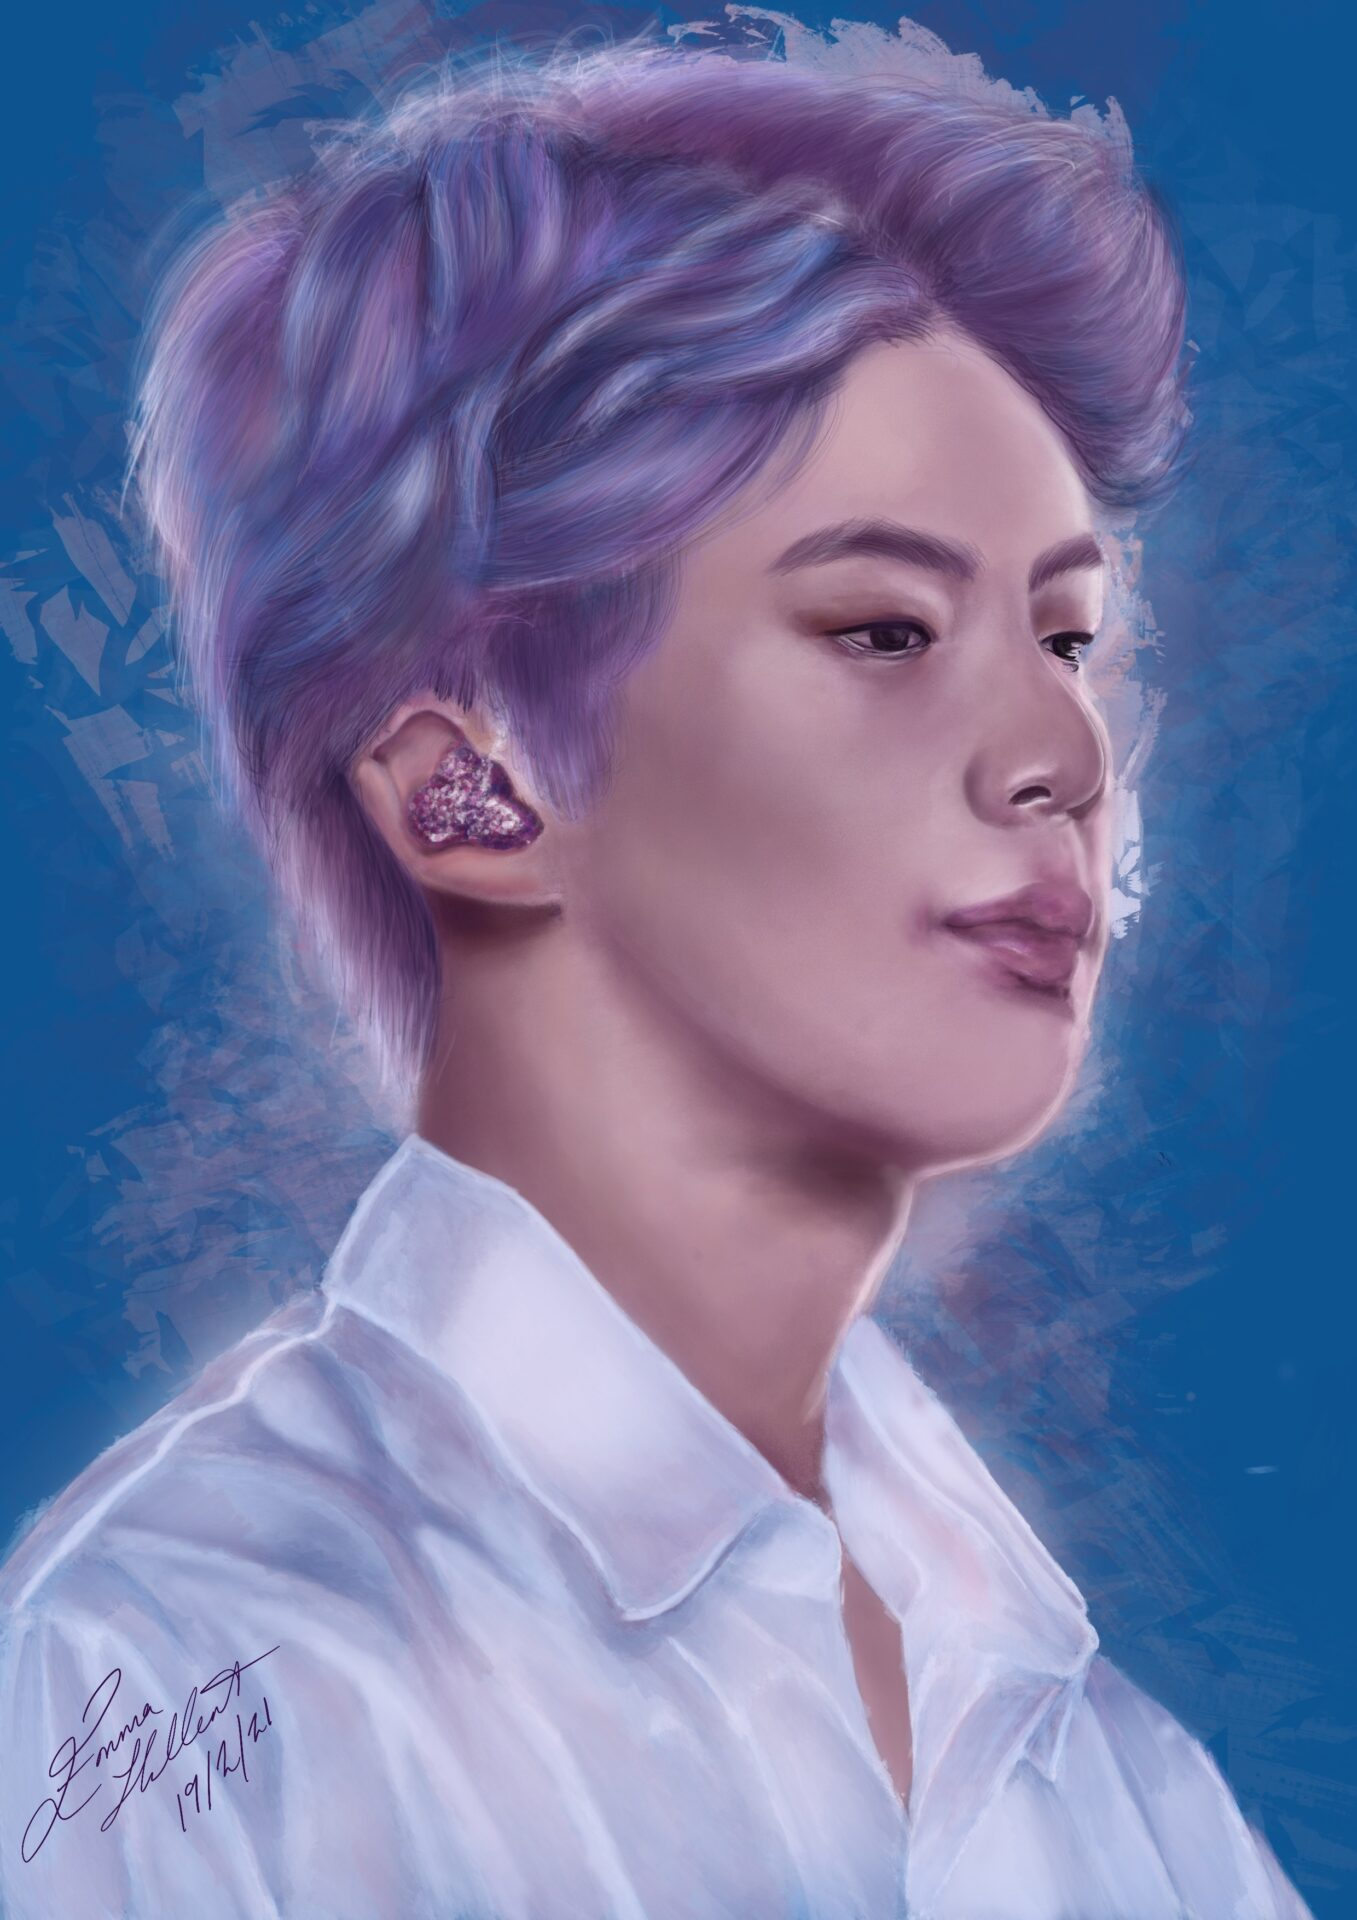 Emma has painted a portrait of Jin from BTS. In the painting, he is wearing a white t-shirt and has purple hair. As he is on stage, he has an ear-monitor in his ear.